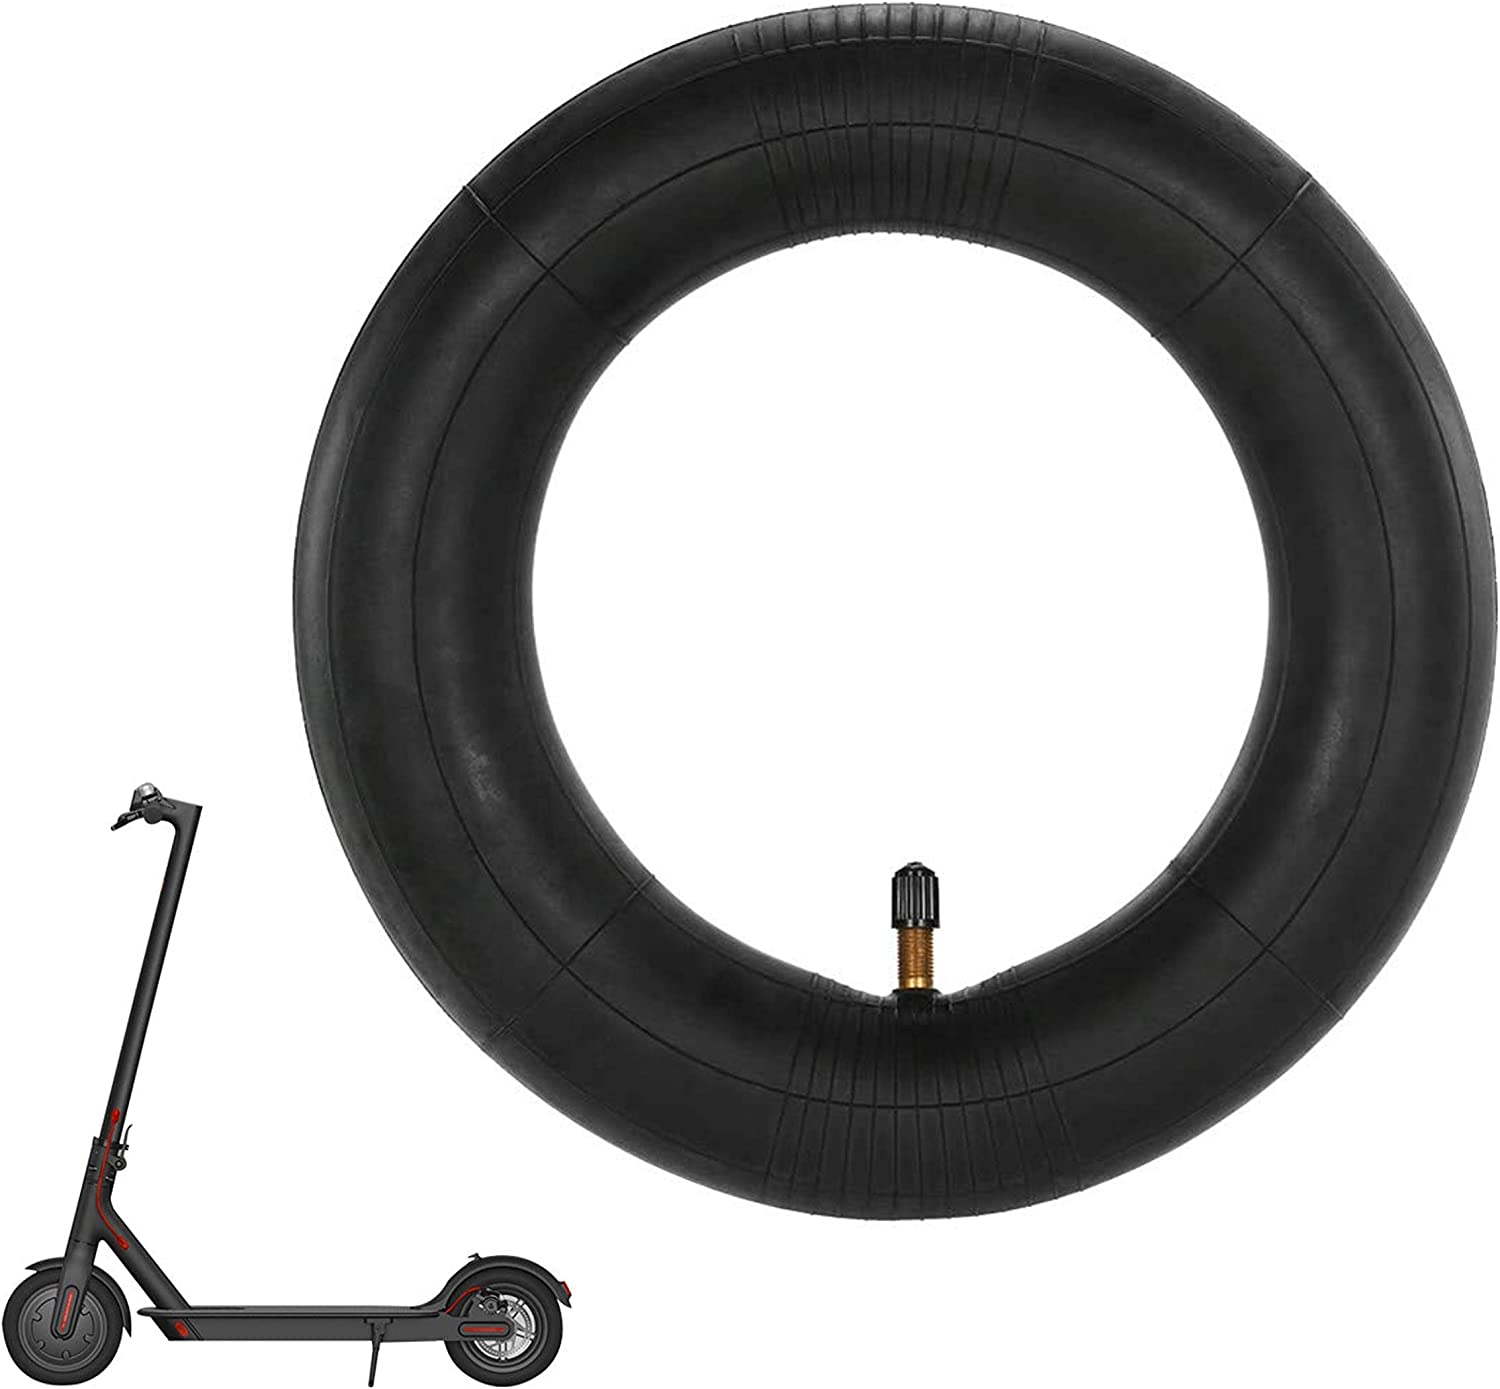 H3E# 8.5 inch Thick Inner Outer Tire Tube for M365 Electric Scooter Accessories